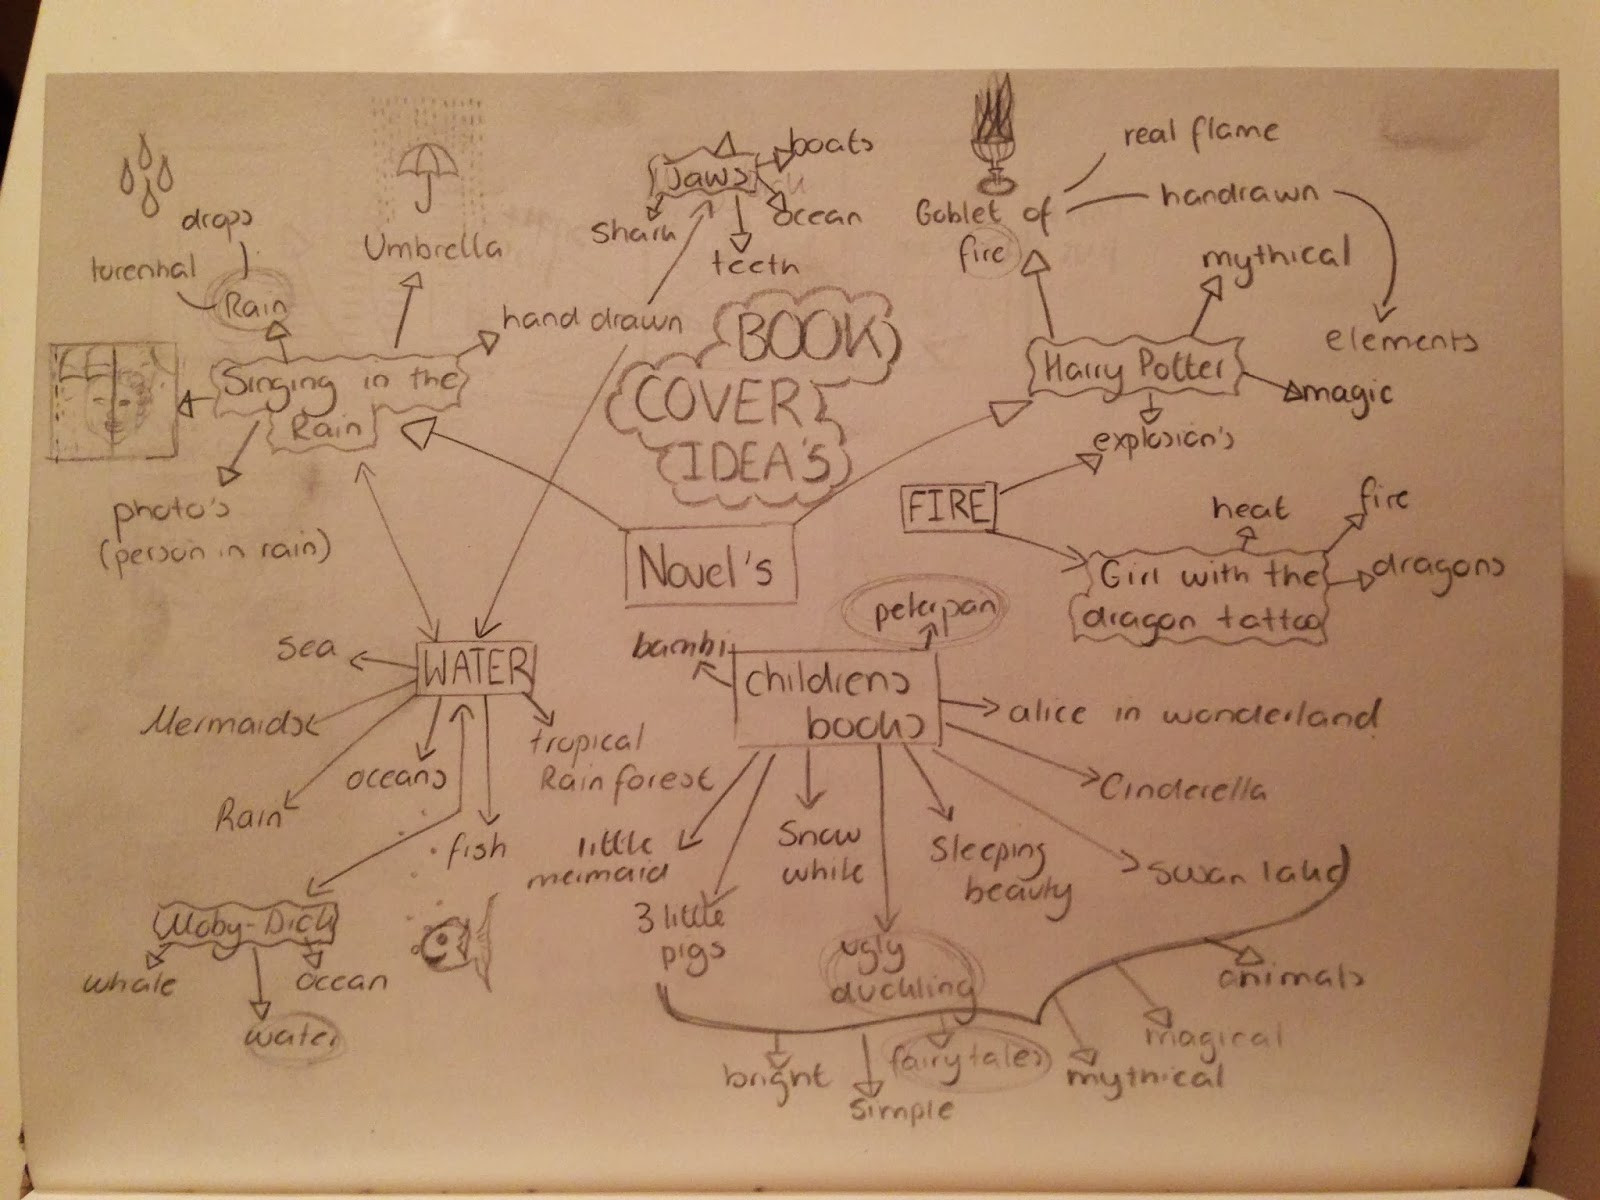 Alice In Wonderland Book Cover Ideas ~ As graphics unit 2: brainstorm of ideas for book cover